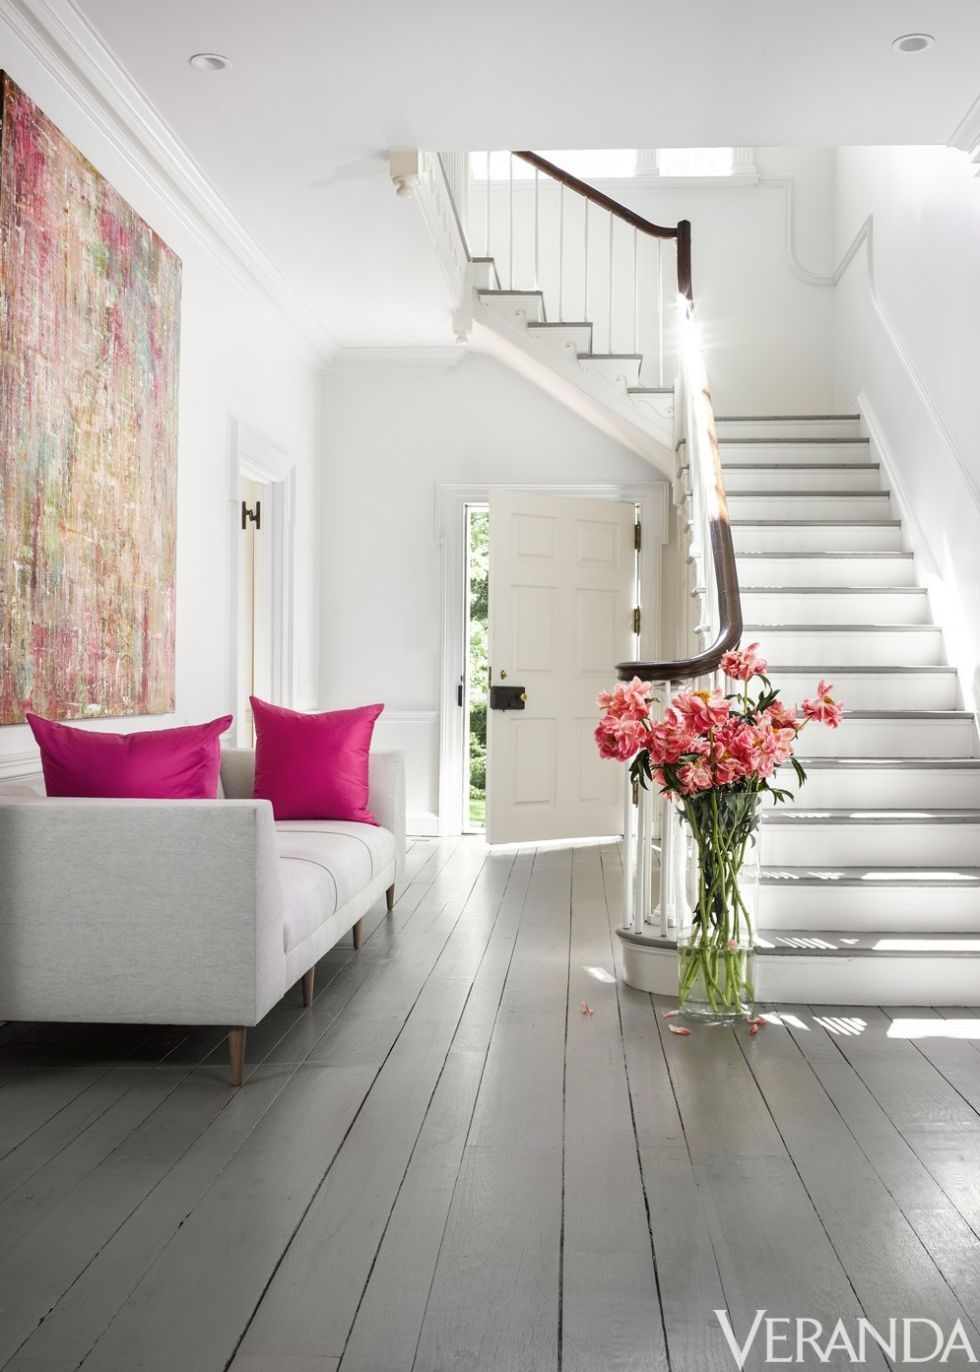 36 Stunning Staircases Ideas Gorgeous Staircase Home Designs | Interior Design Staircase Wall | Luxurious Home | Unique | Beautiful | Fancy | Building Interior